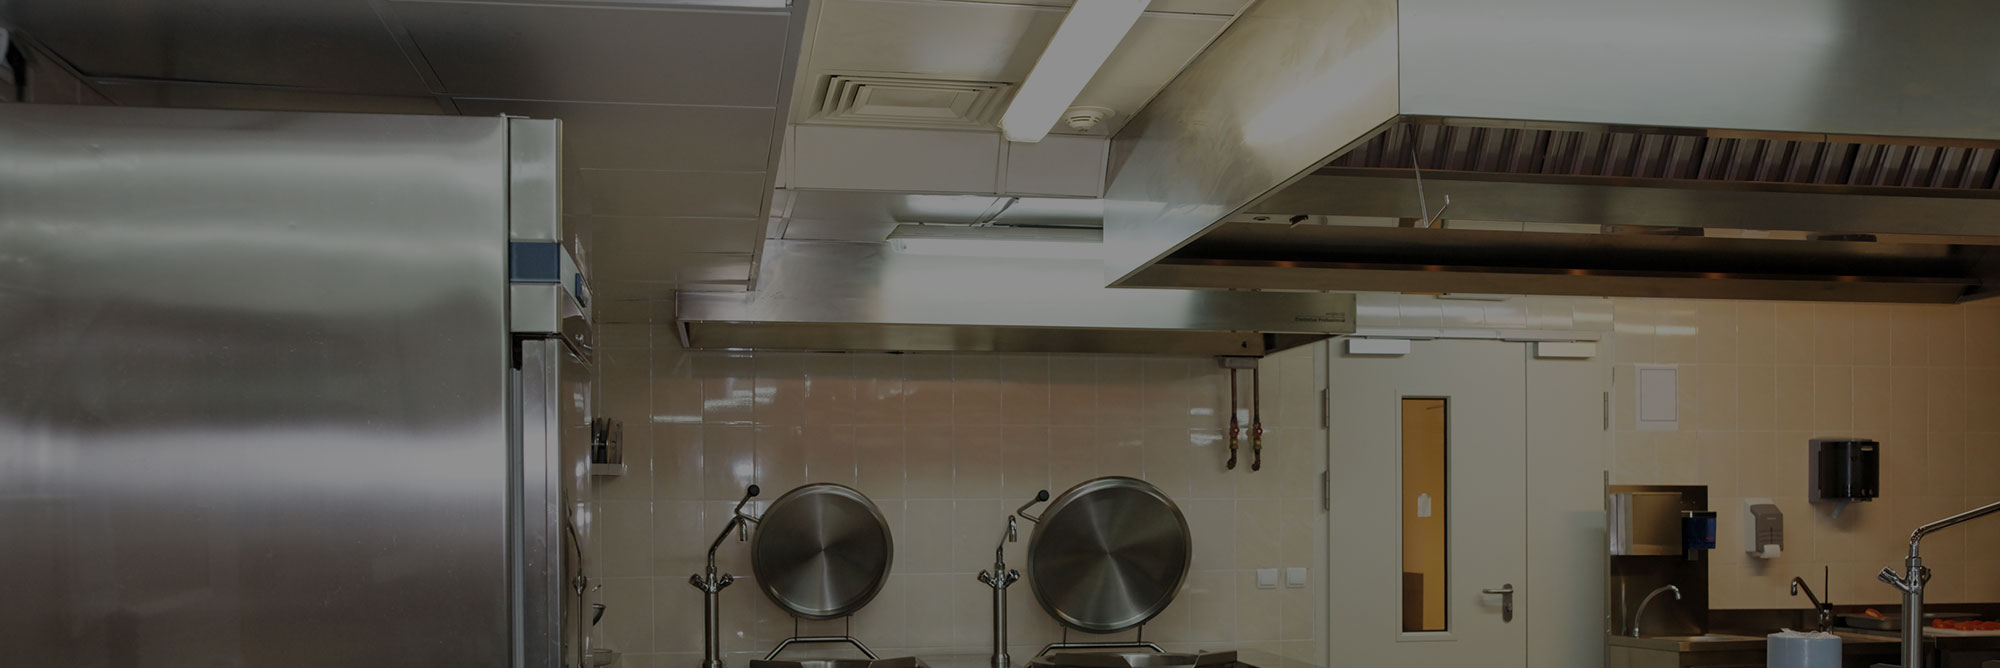 Dependable Exhaust Hood Services in Rancho Cordova, CA